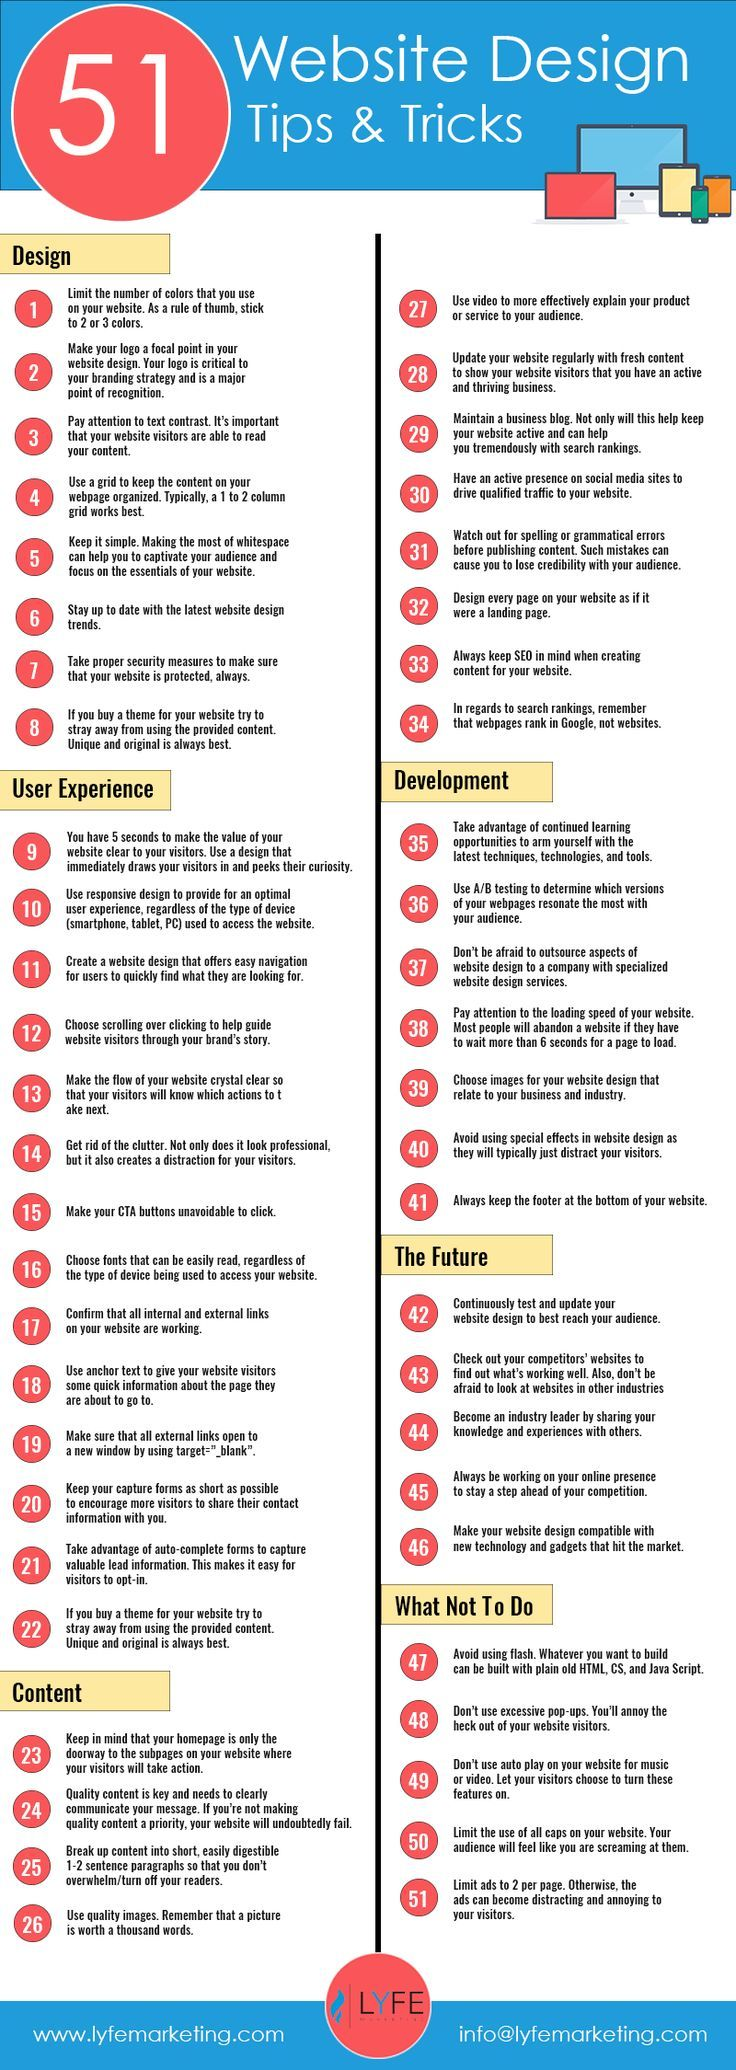 Tips to have an effective website.